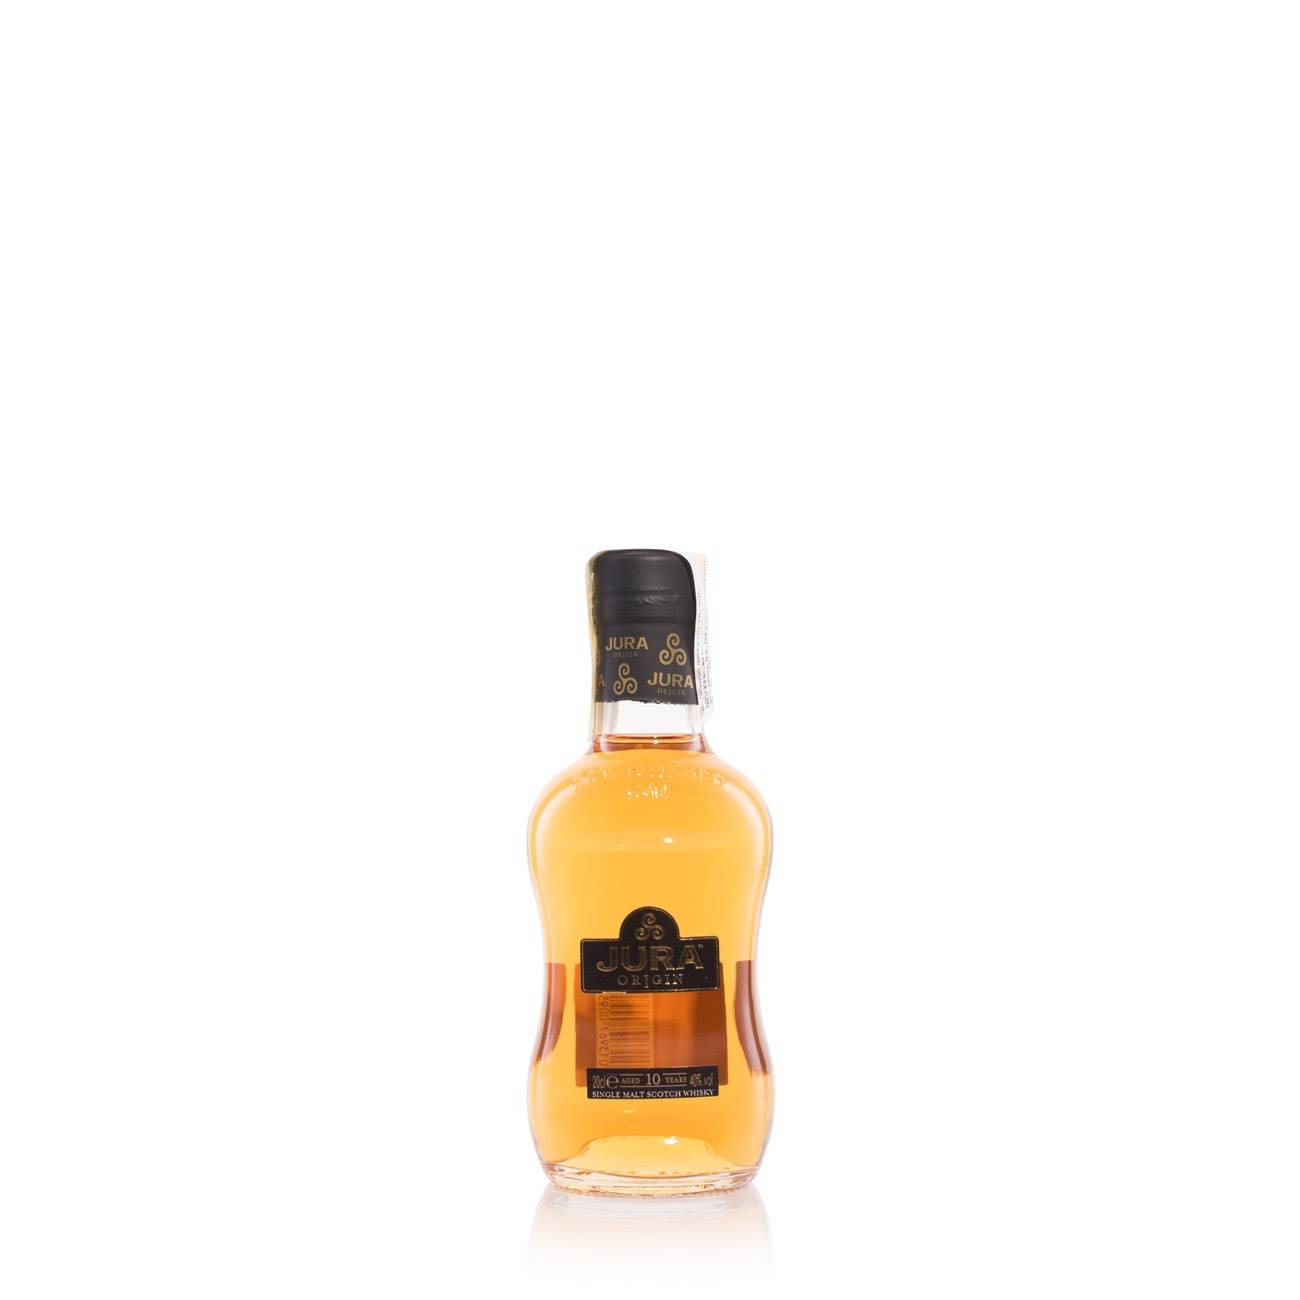 Whisky scotian, JURA ORIGIN 10 Y 200 Ml, Isle Of Jura